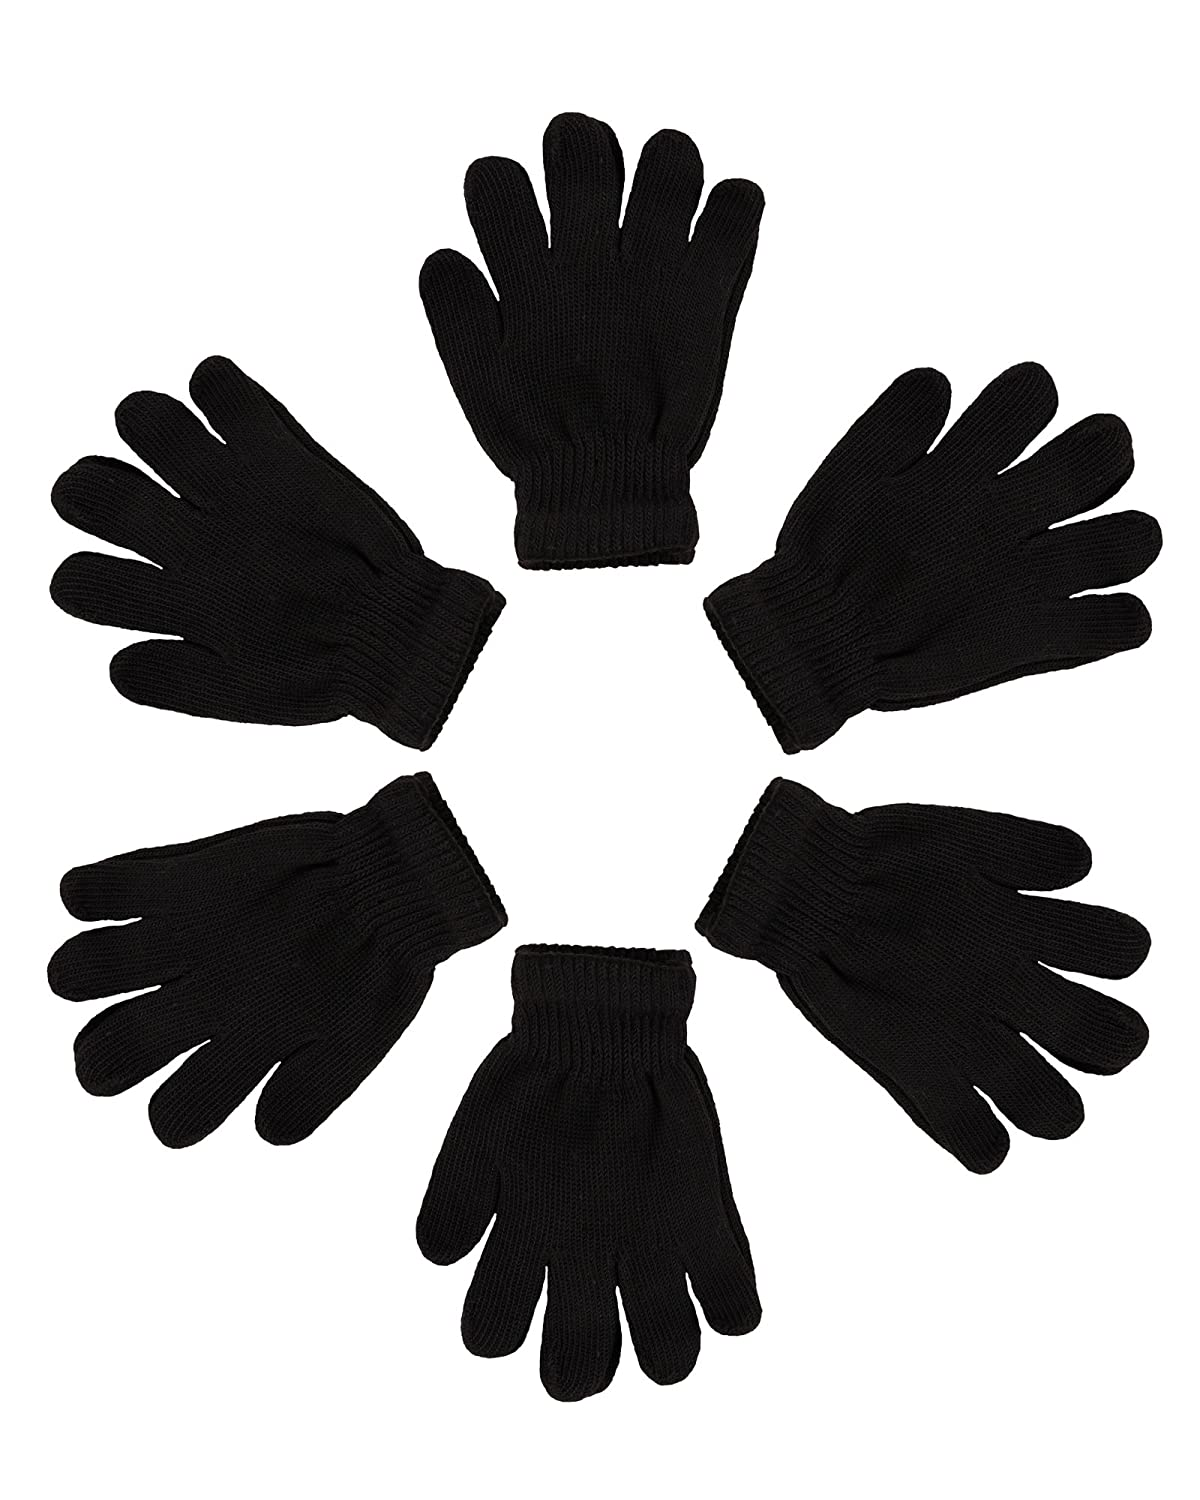 2ND DATE Kid's Winter Magic Gloves-Pack of 12 2000000093